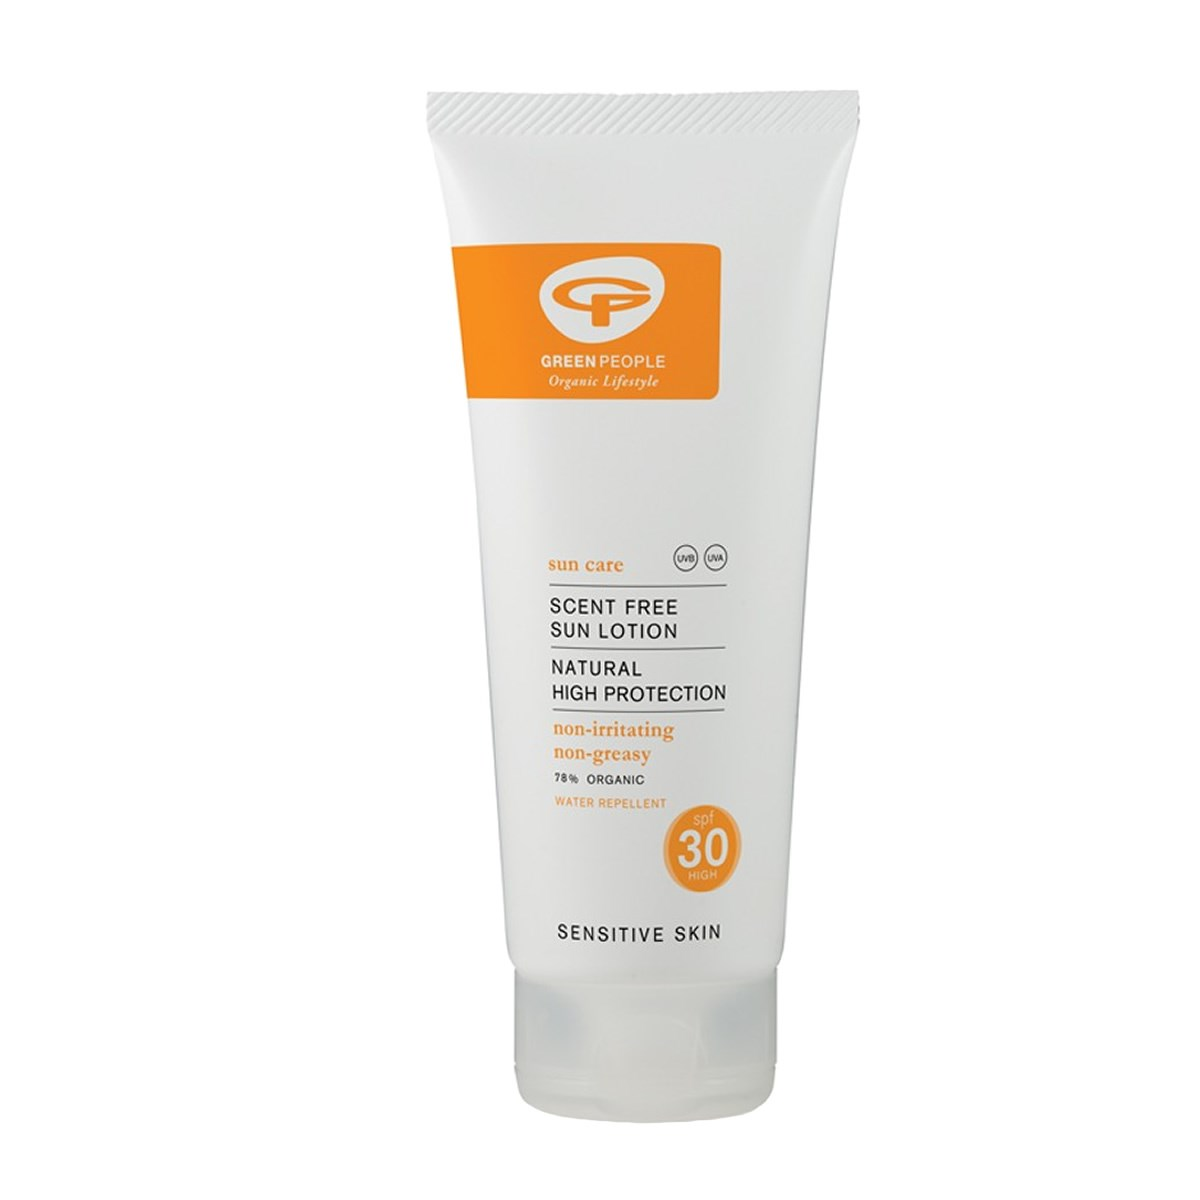 Green People Organic Scent Free Sun Lotion SPF30